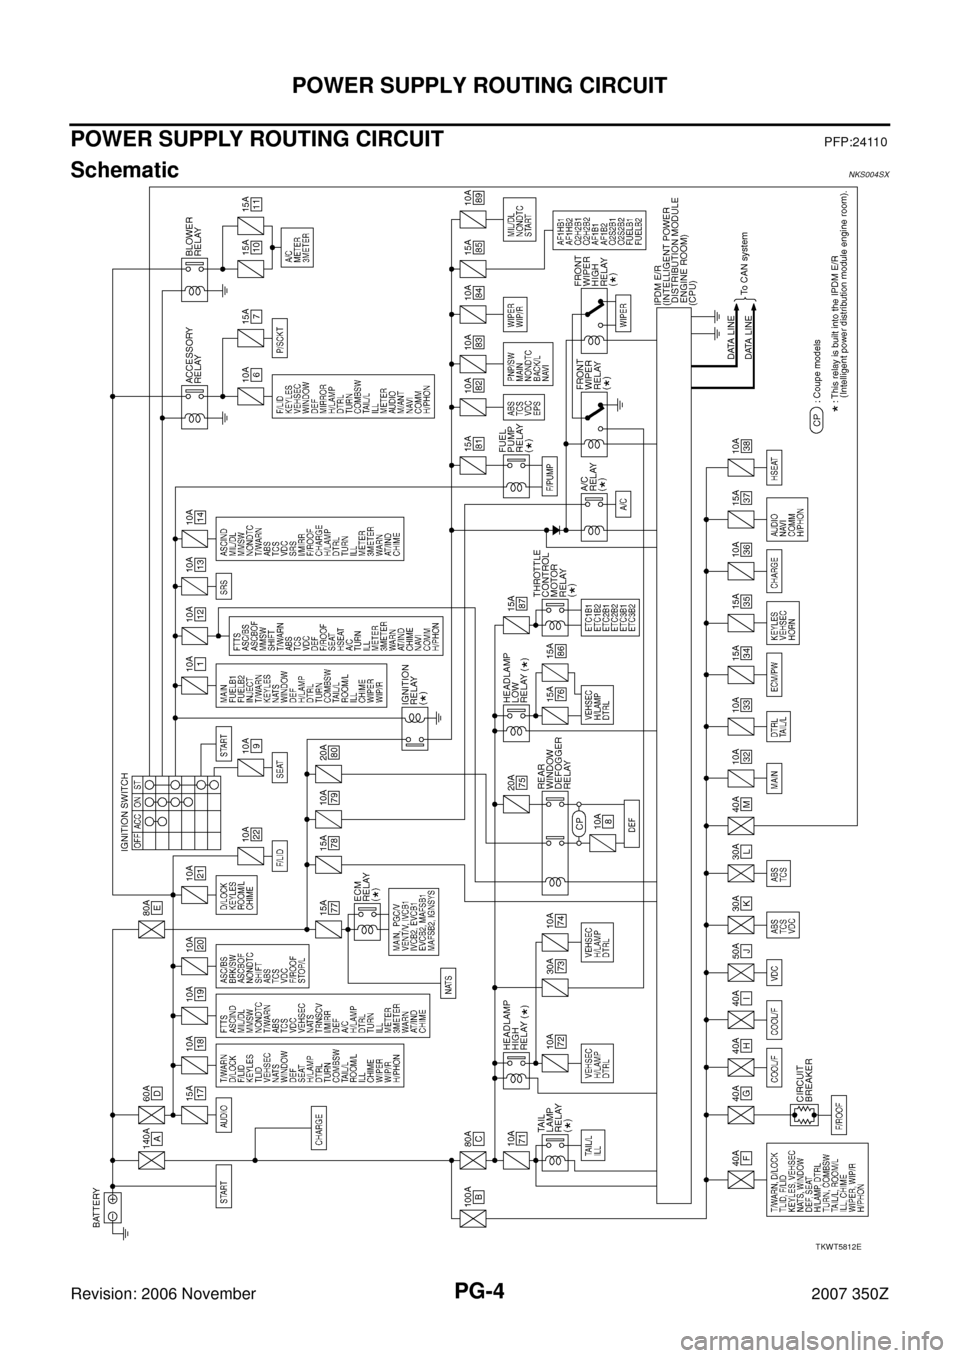 nissan rogue fuse panel diagram - auto electrical wiring ... 2011 nissan rogue fuse box